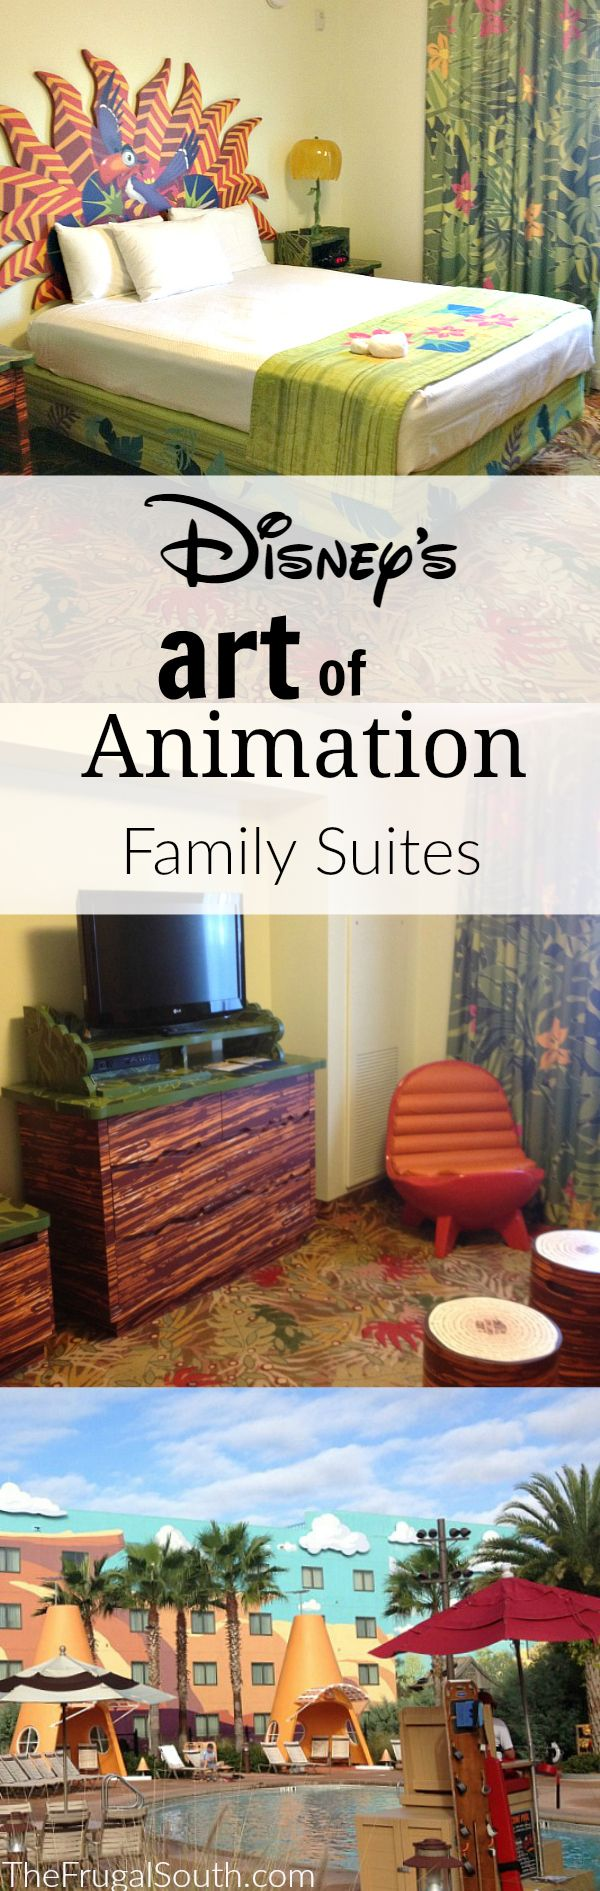 Standard hotel rooms at Disney feeling cramped? Here's a review of the Family Suites at Disney's Art of Animation Resort, which sleep up to six. Perfect for families with young kids who want privacy and more space!